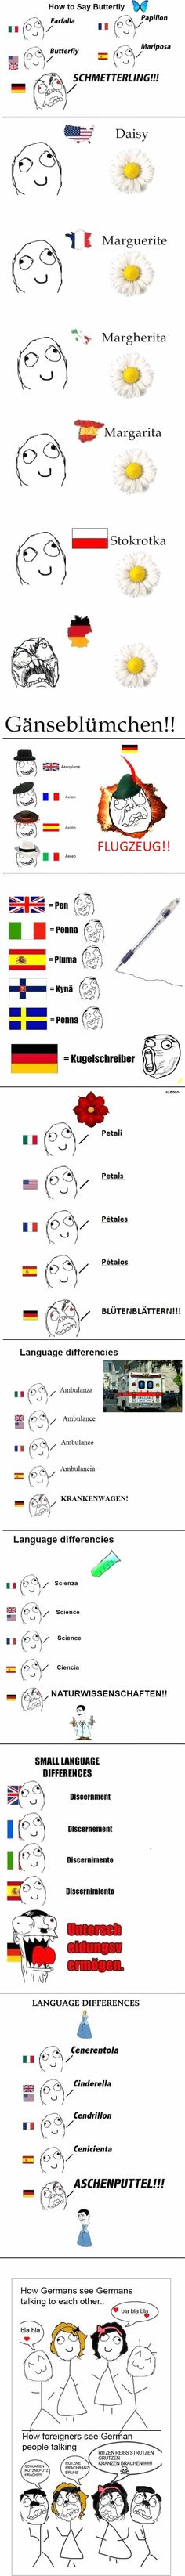 The German language. Nicht gleich so aggressiv :D